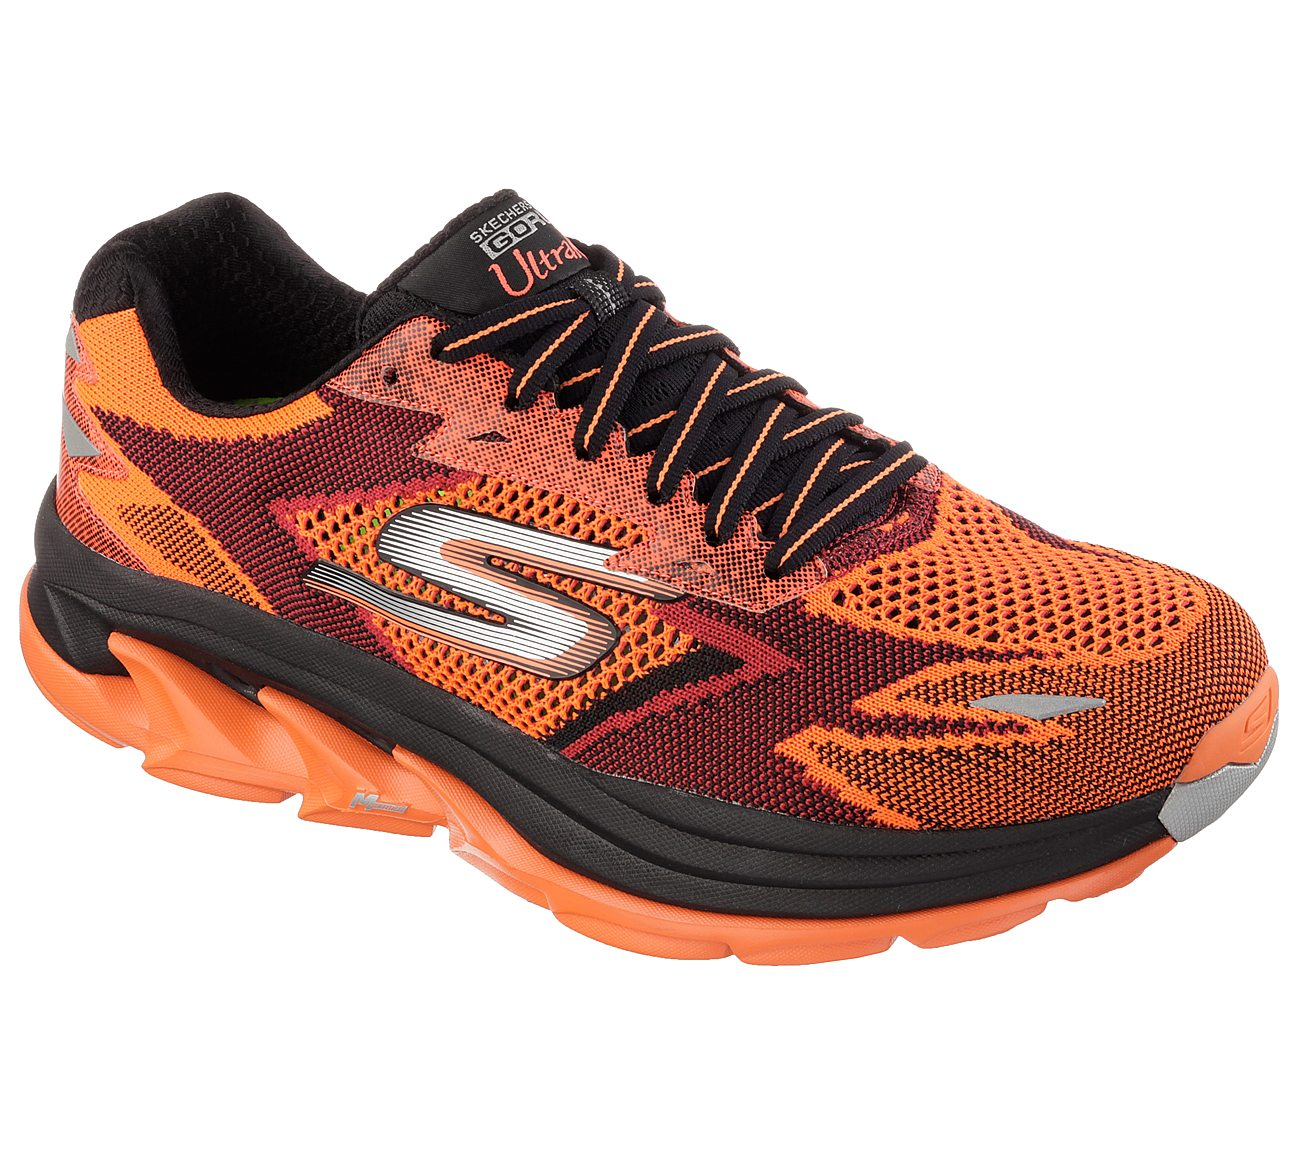 Things to see for getting a skechers shoes